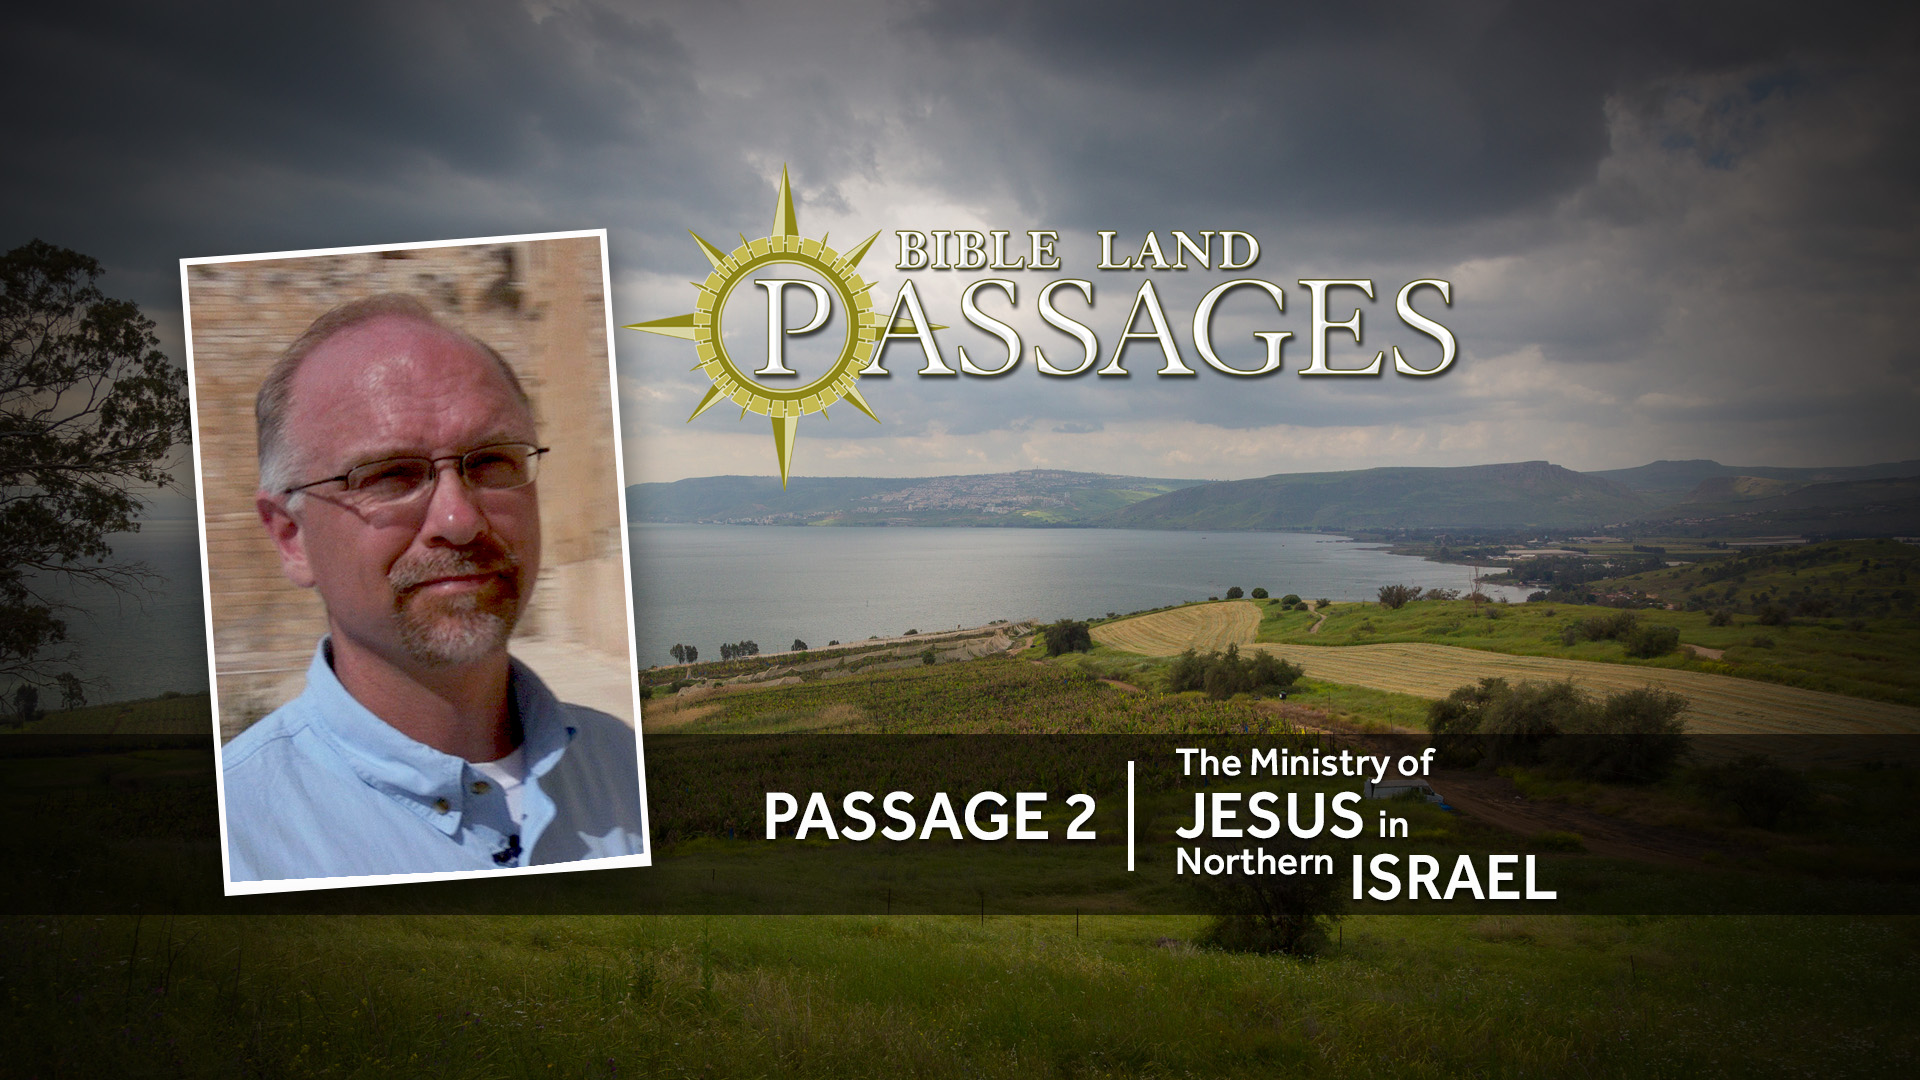 Passage 2 | The Ministry of Jesus in Northern Israel